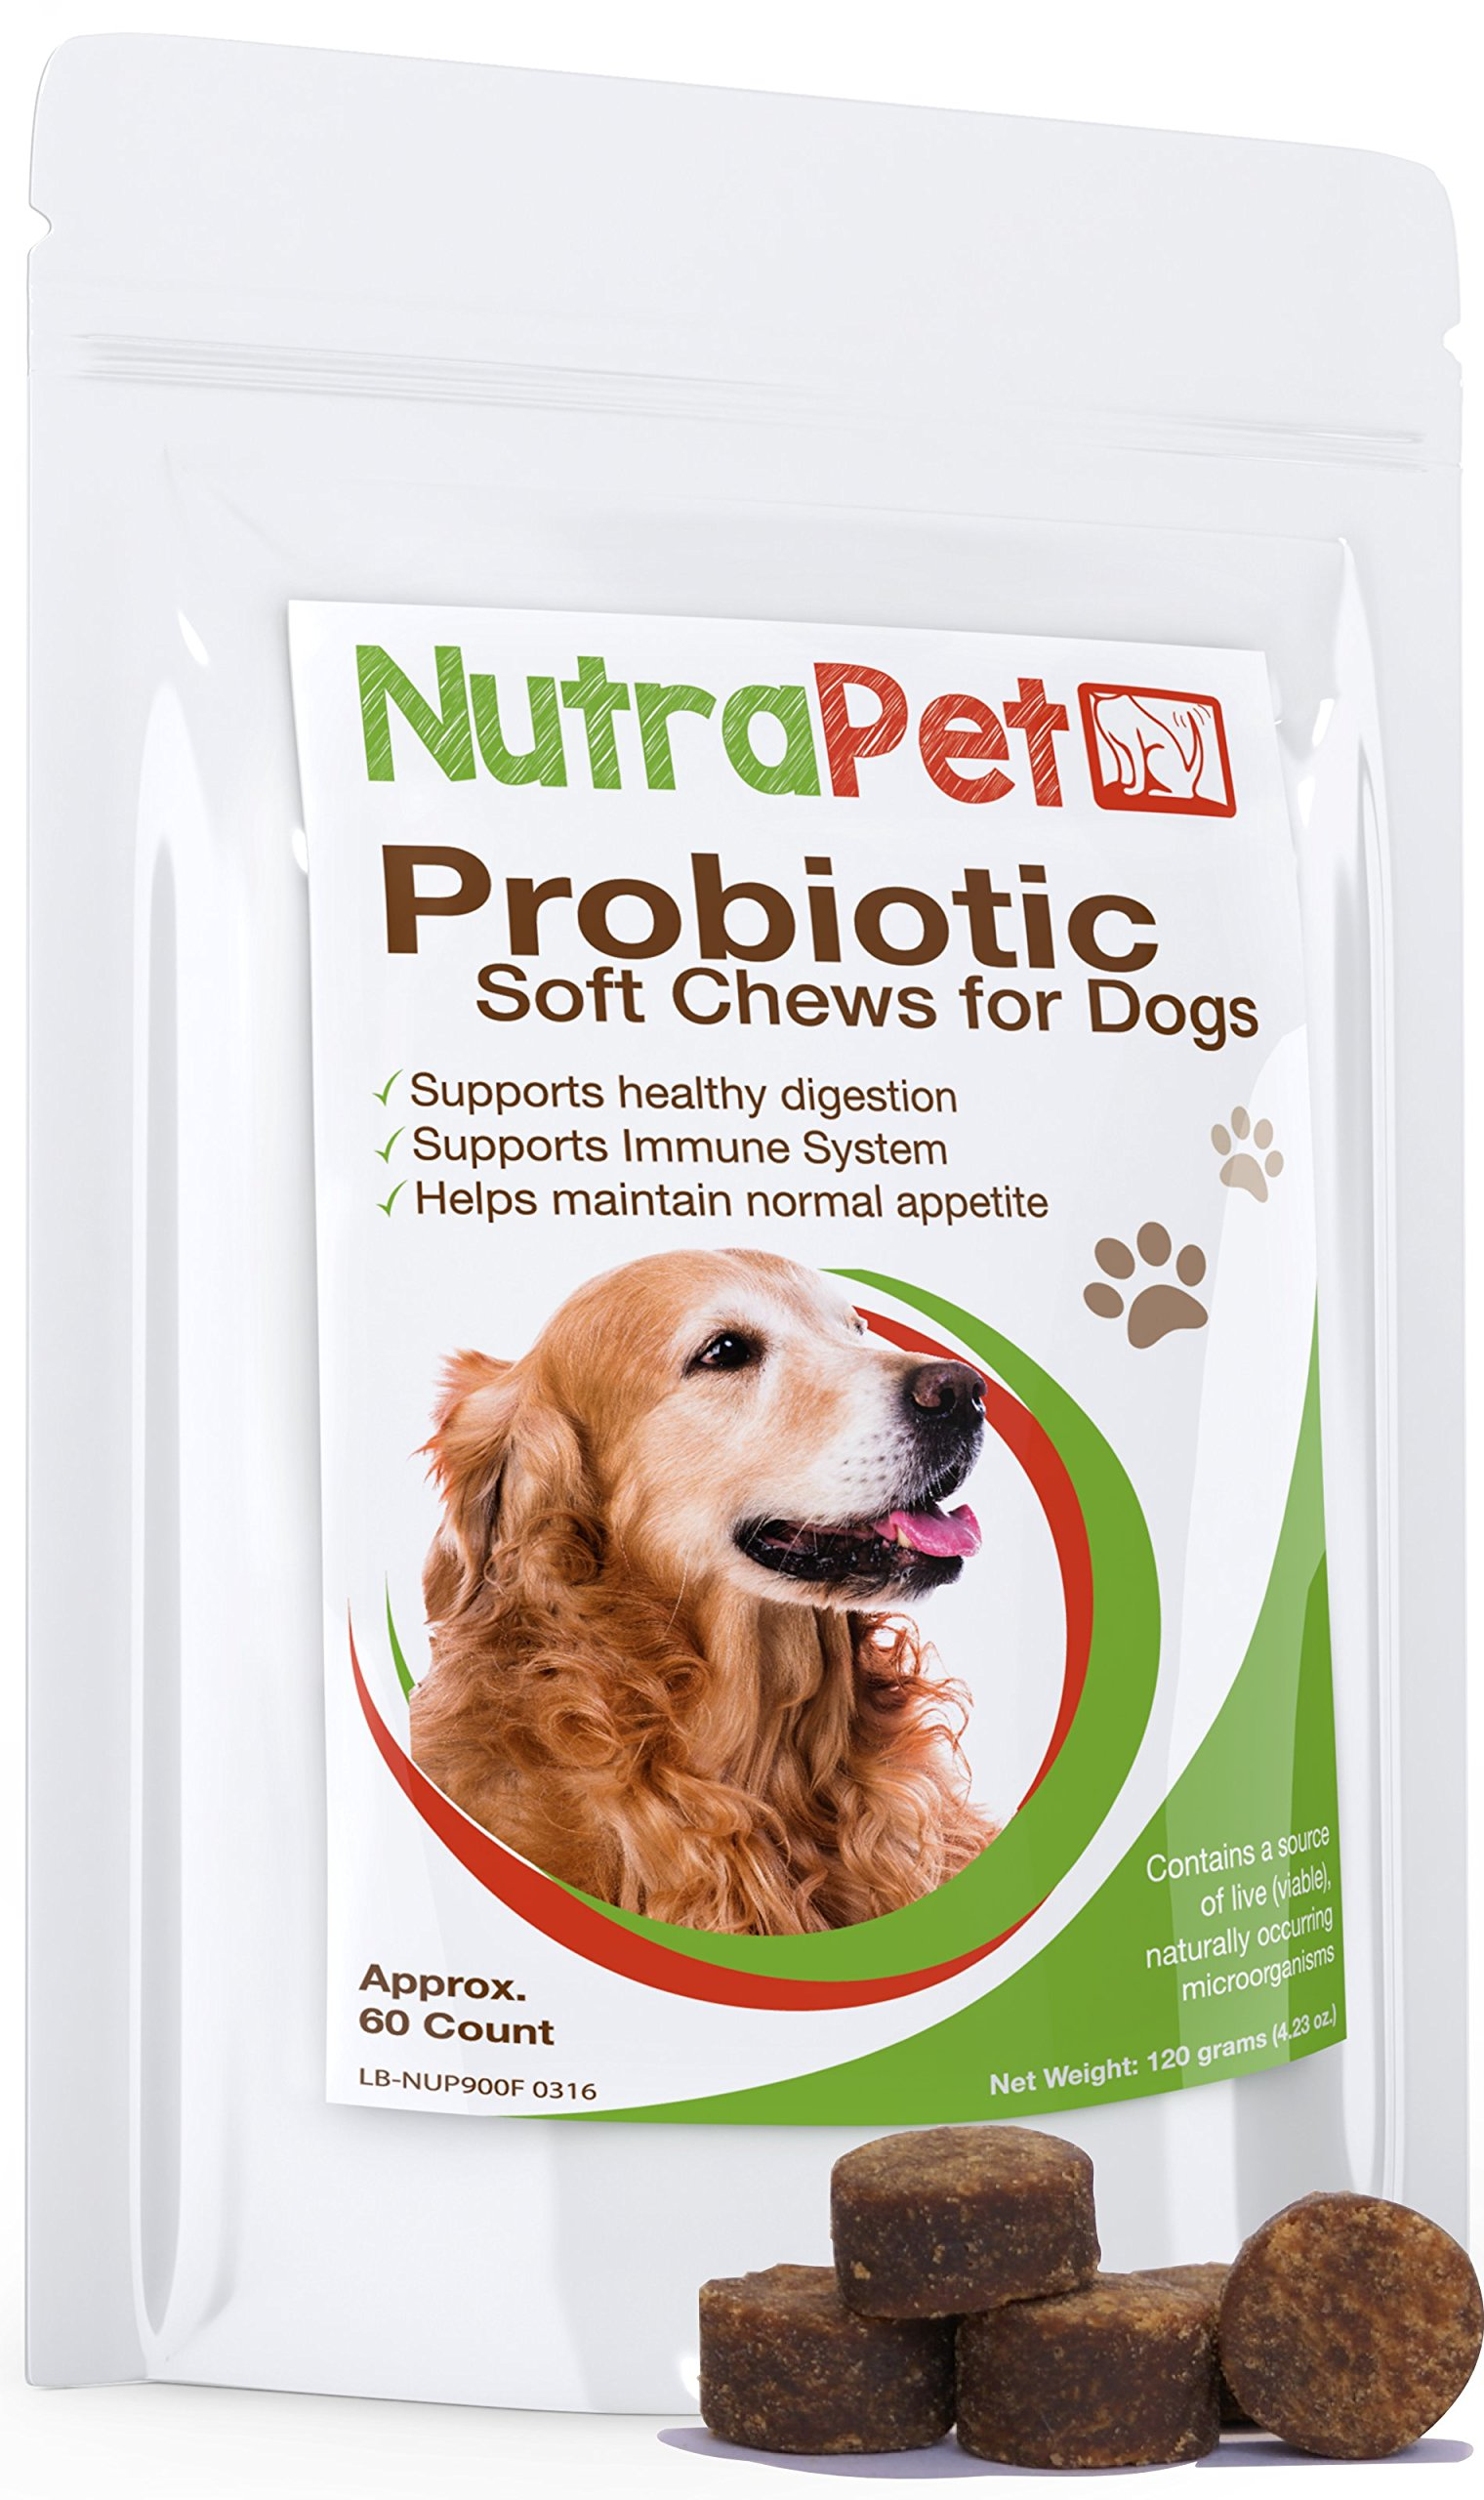 NutraPet Probiotics for Dogs Soft Chews - Digestive Health Supplement in a Tasty Treat - Delicious Chicken Liver Dog Probiotic That Your Pup Will Love! - 60 Count by NutraPet